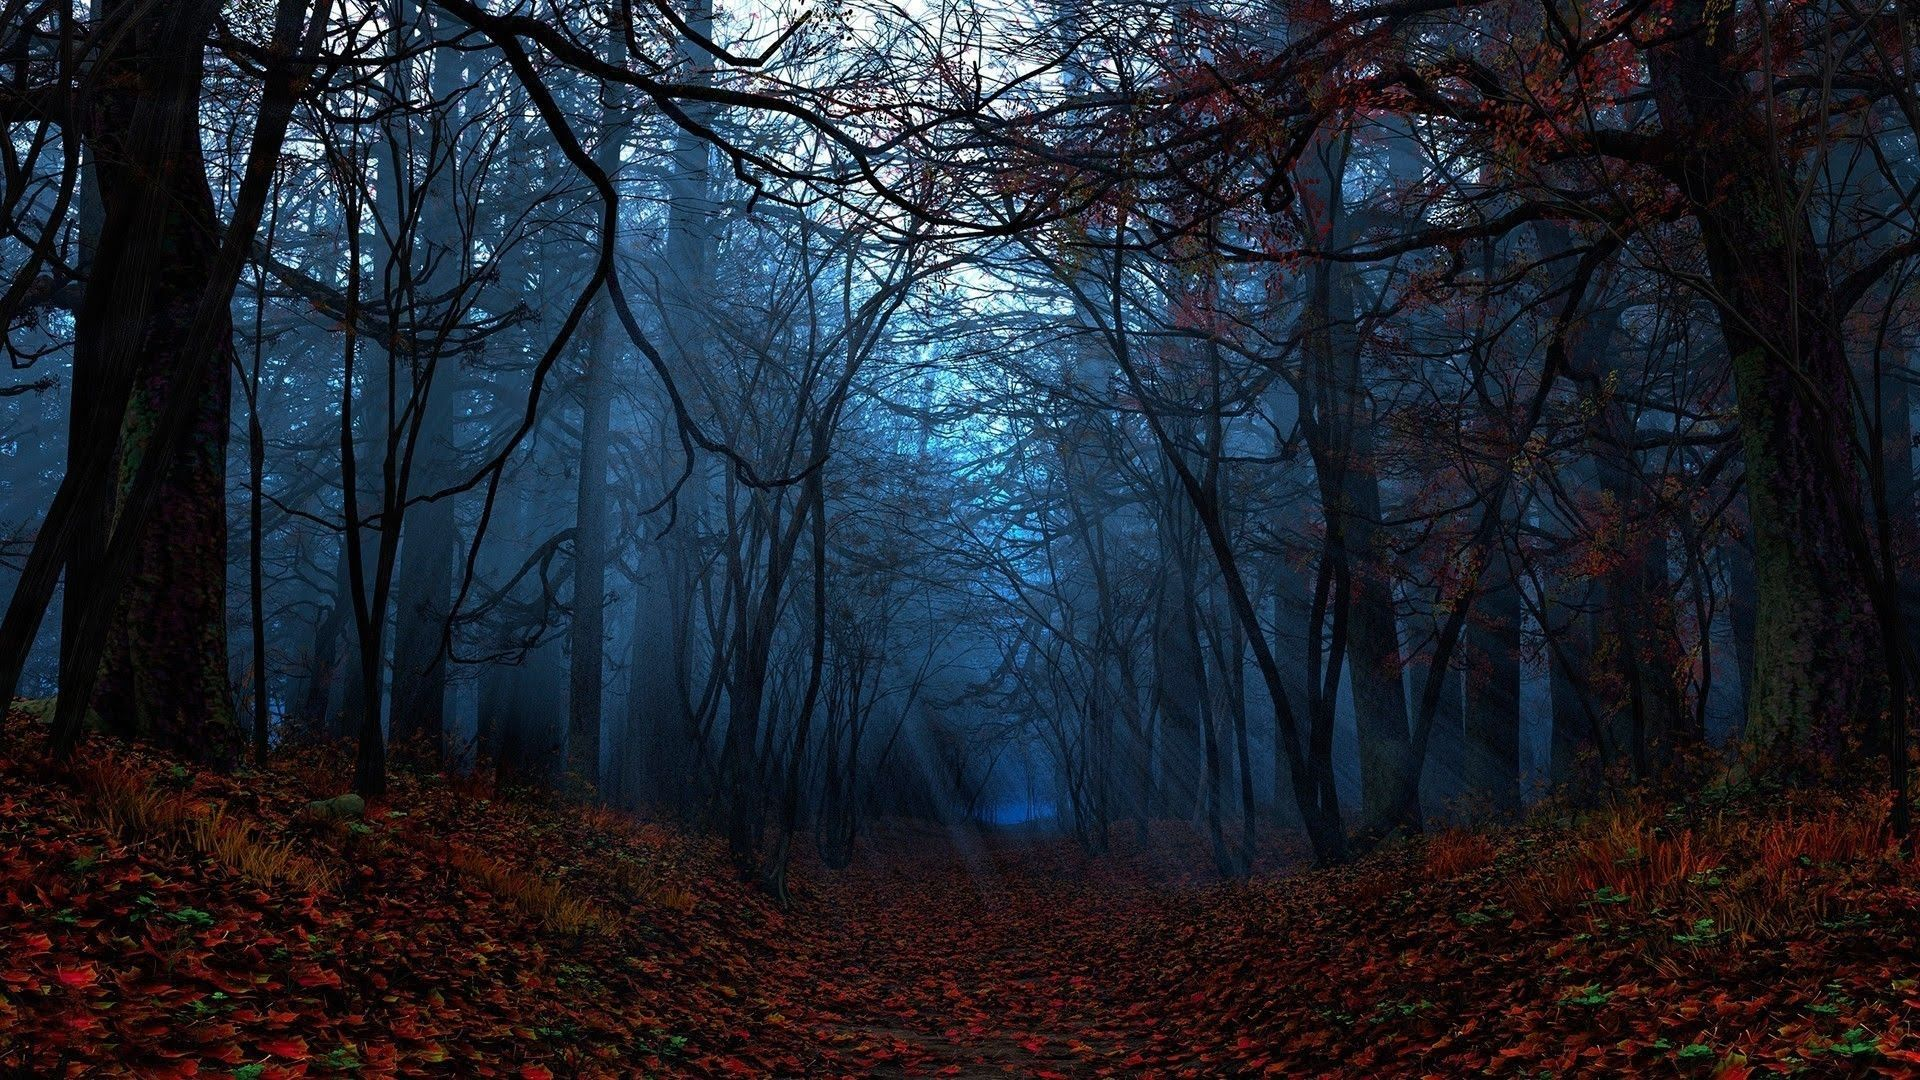 Pin By Emily H On Gr 150 Music Festival Fall Forest Wallpaper Autumn Forest Fall Wallpaper